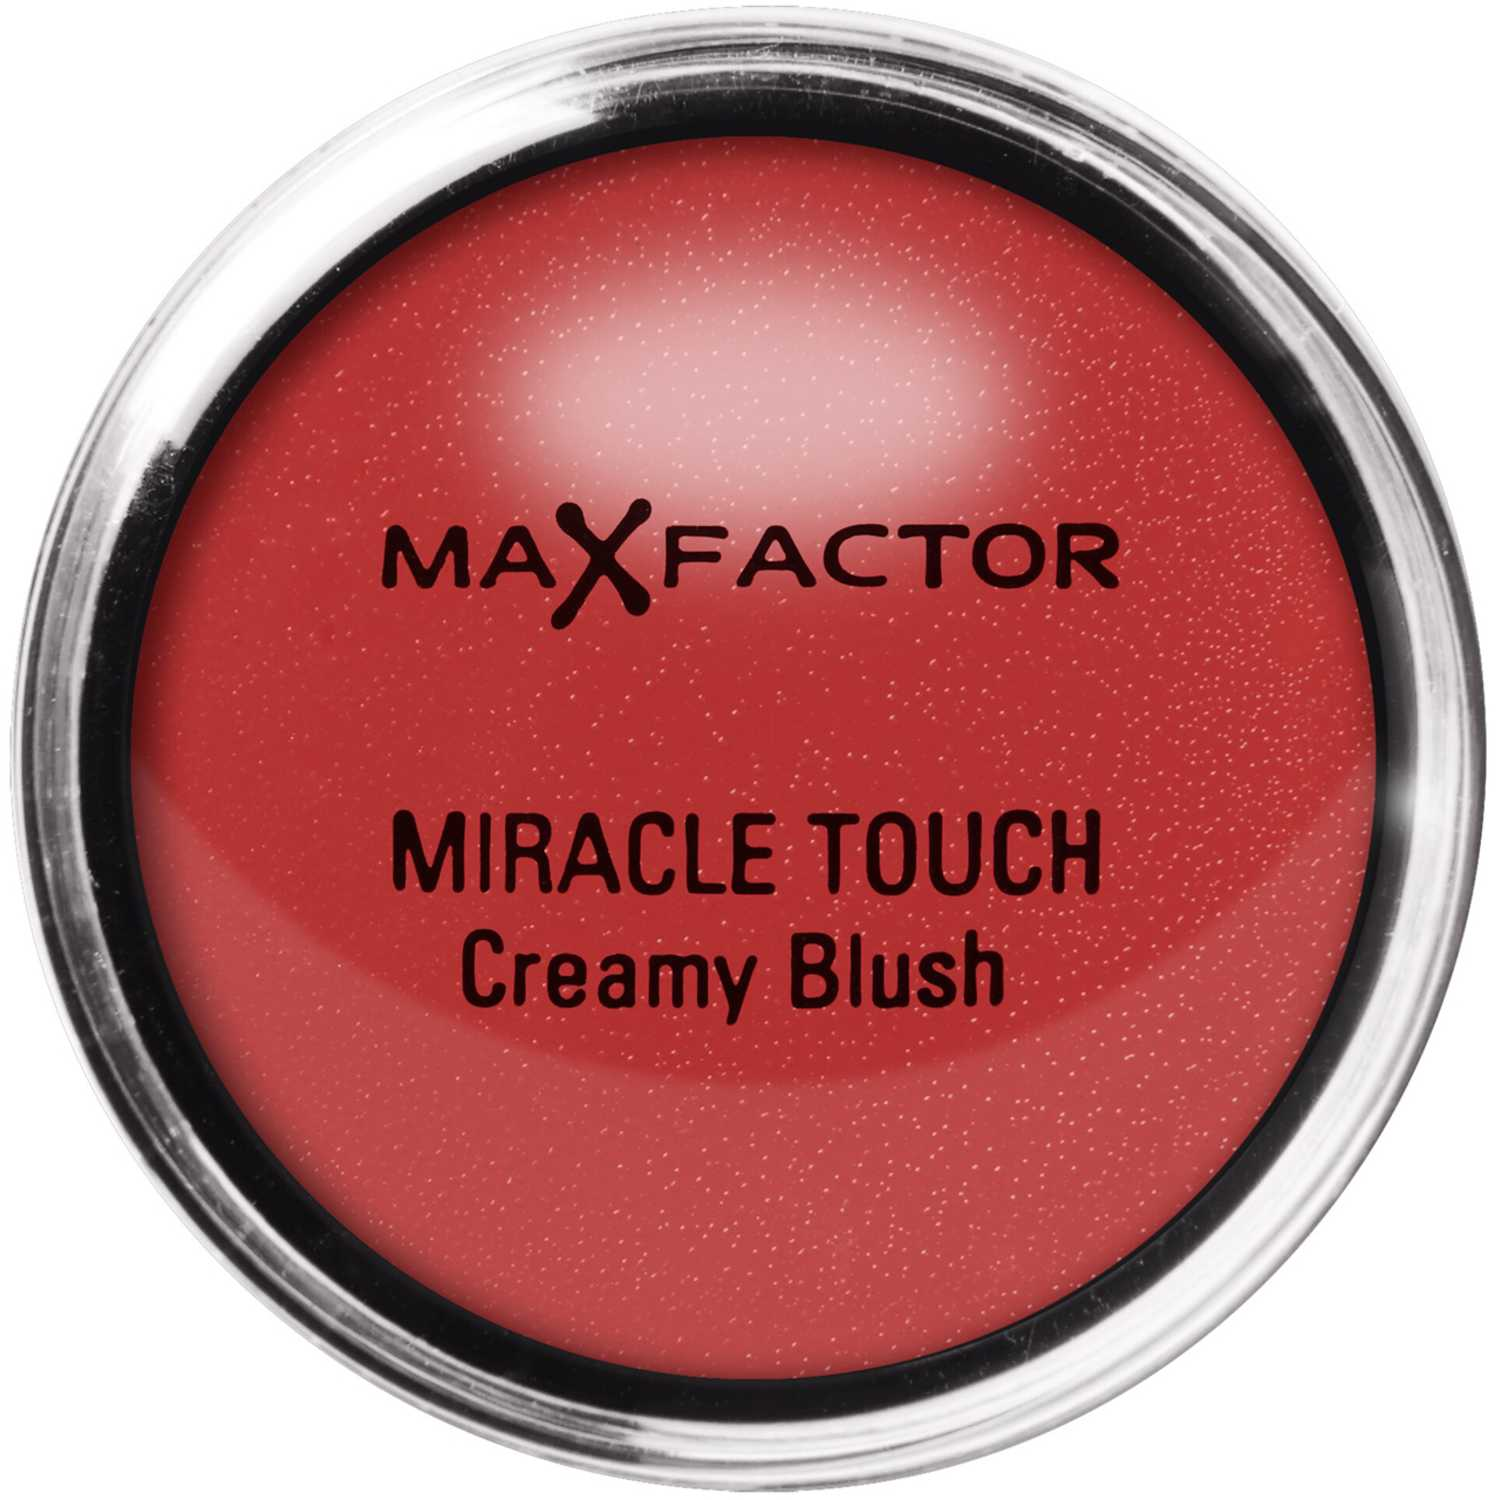 Rubor de Mujer Max Factor Soft Candy rubor miracle touch